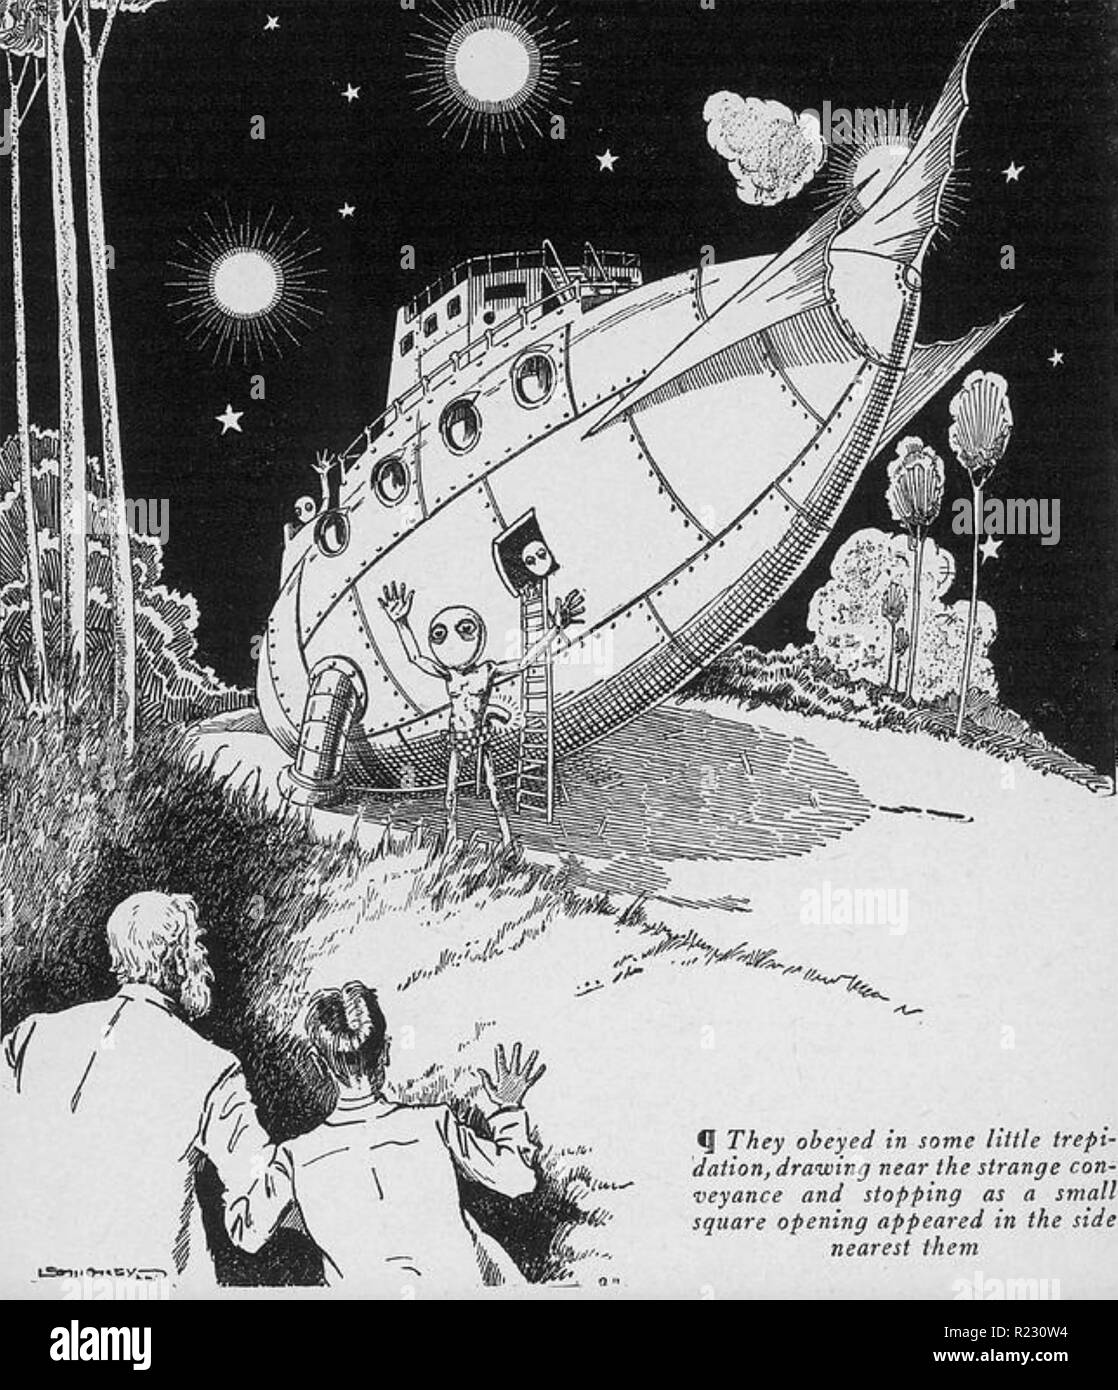 HAL VINCENT (1893-1968) American science fiction author. Illustration from his MICROCOSMIC BUCCANEERS 1929 novel. - Stock Image